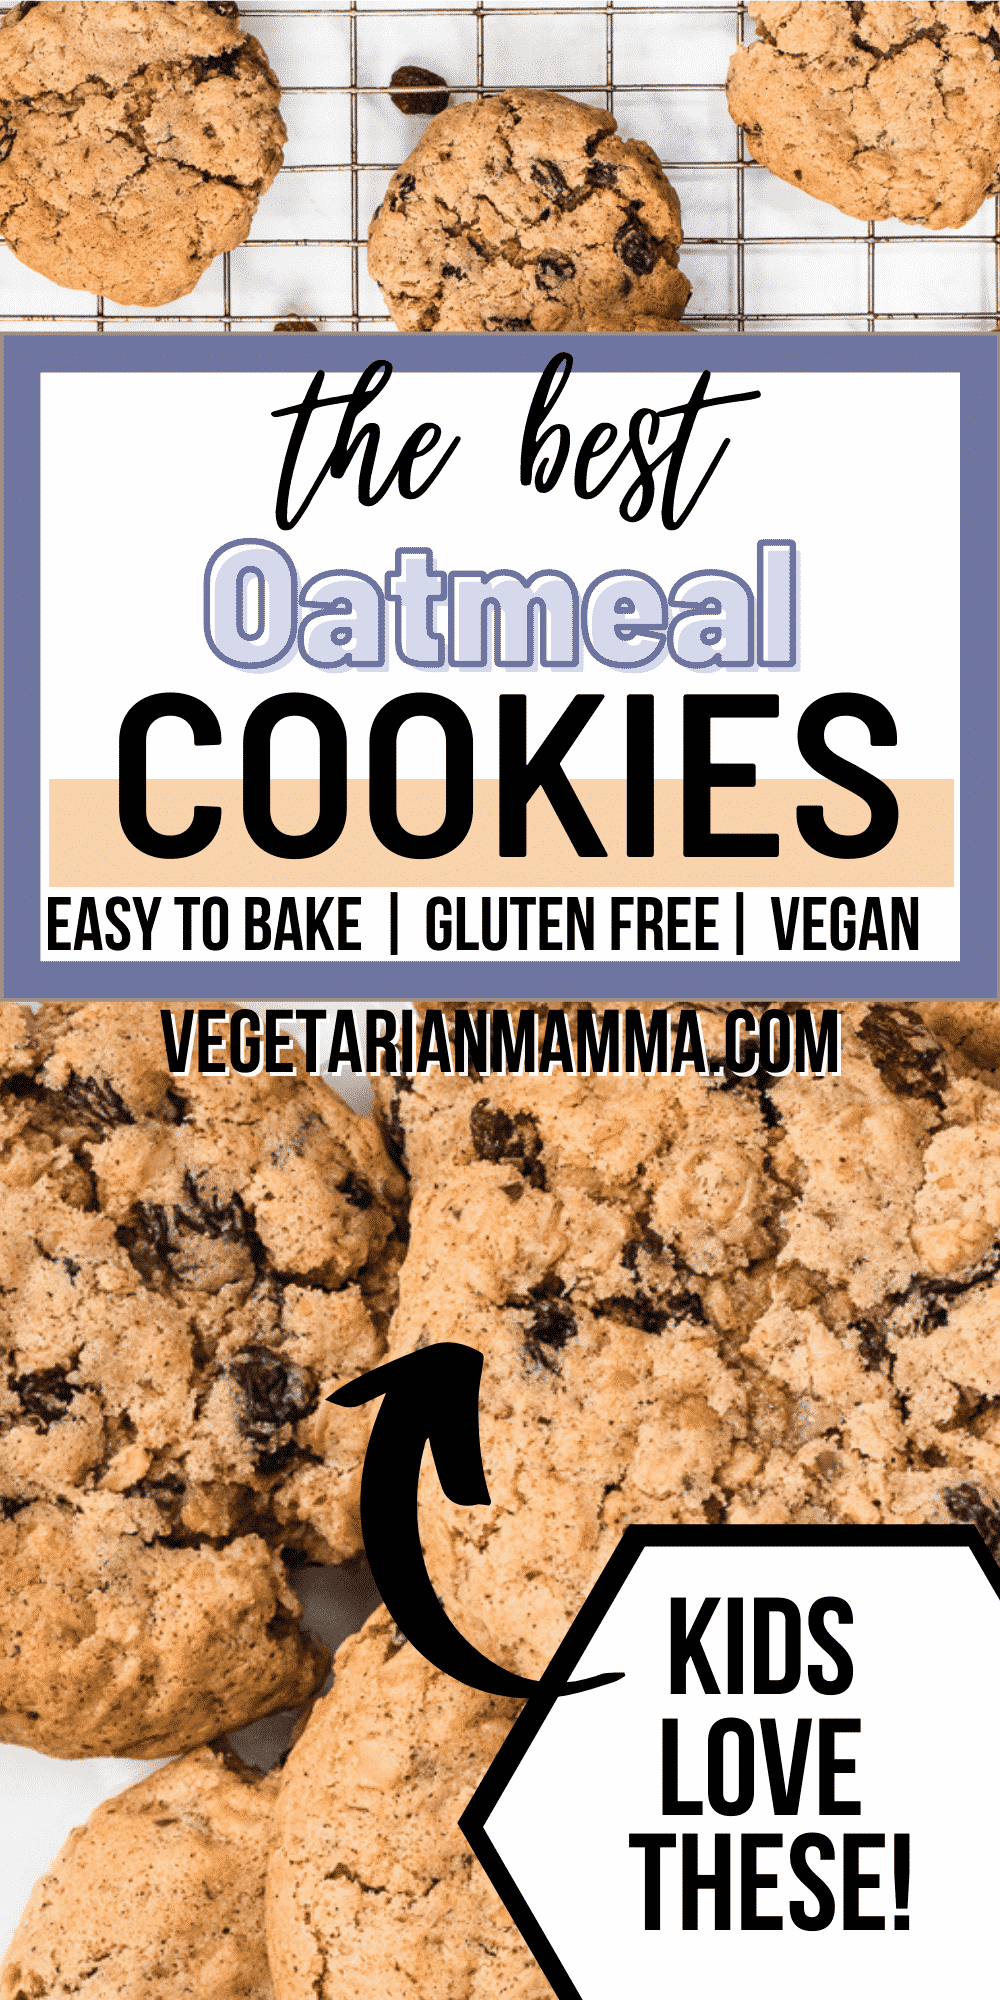 These Vegan Oatmeal Cookies are totally gluten free and a great Celiac snack! They're super easy to whip together with gluten-free rolled oats, yummy raisins, and a pinch of cinnamon.